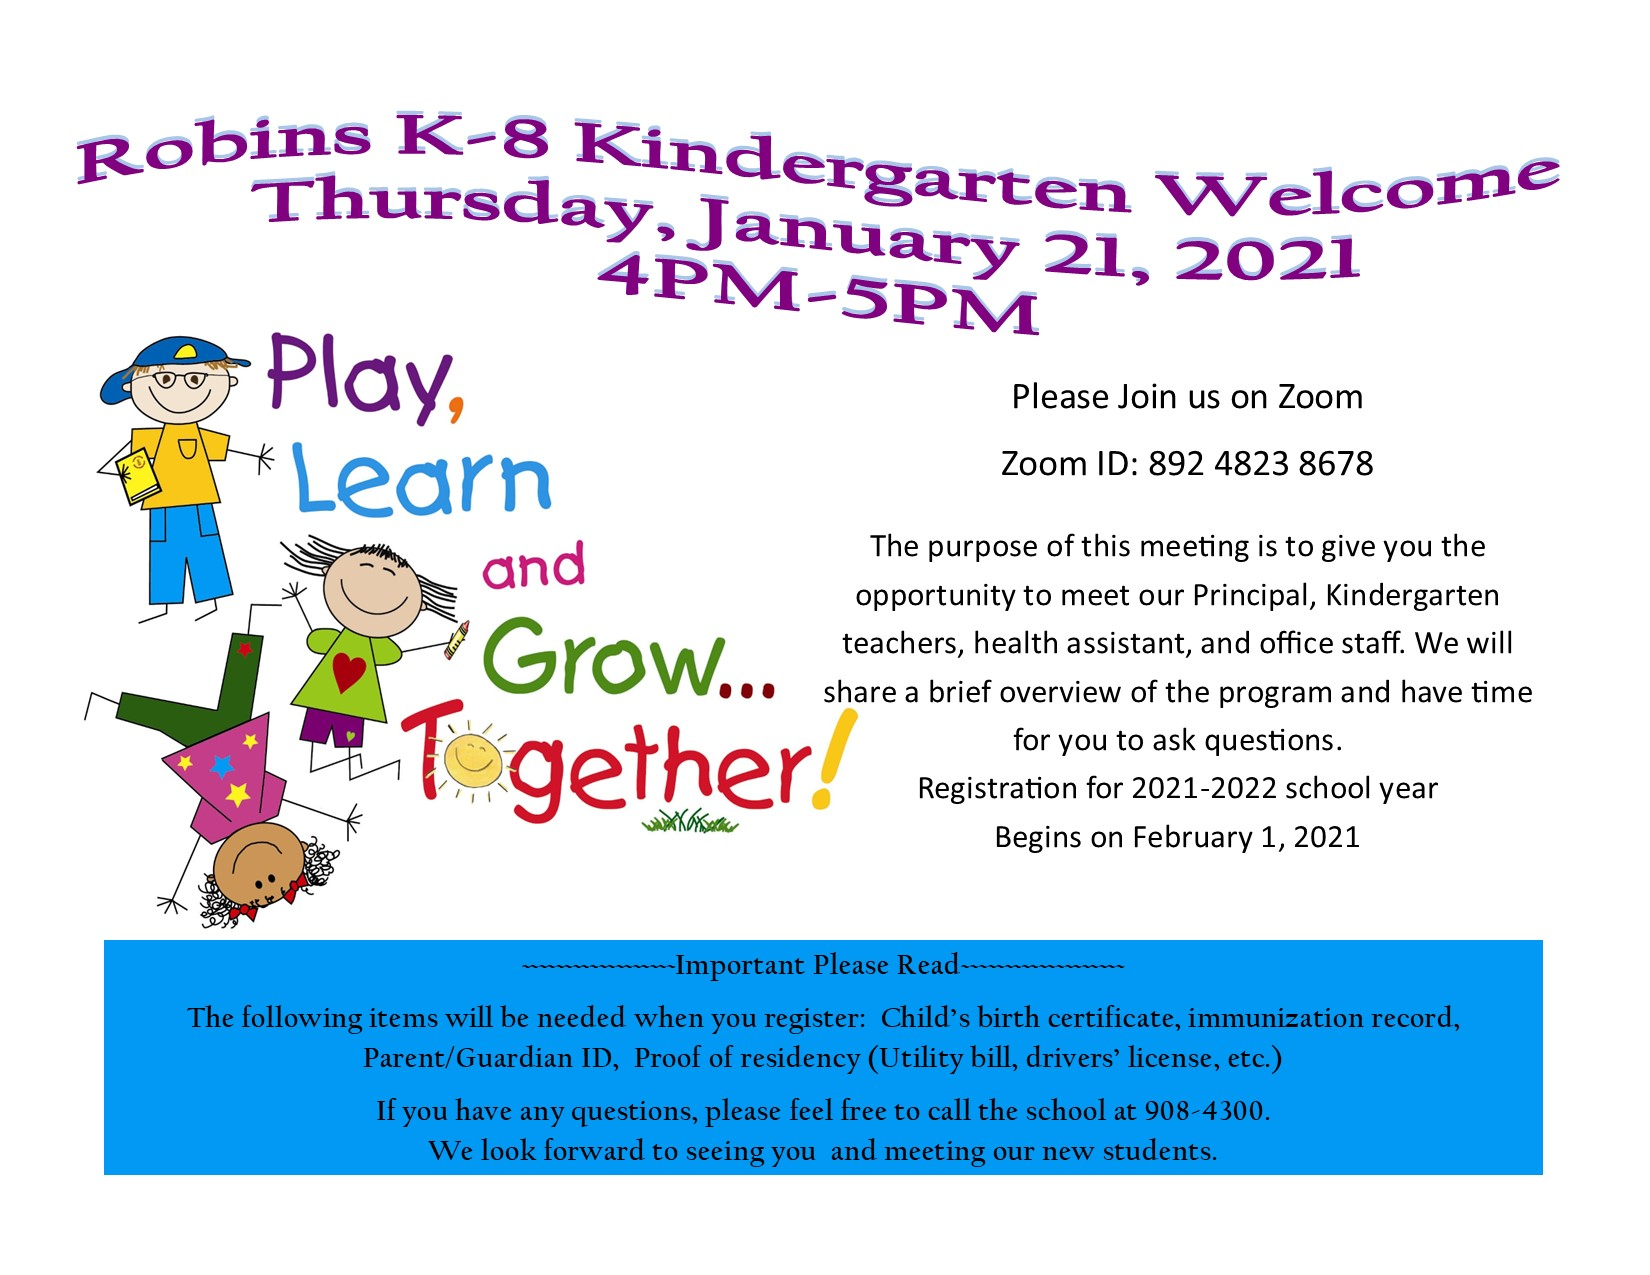 Robins K-8 Kindergarten Welcome Thursday, January 21, 2021  4PM-5PM Please Join us on Zoom  Zoom ID: 892 4823 8678  The purpose of this meeting is to give you the             opportunity to meet our Principal, Kindergarten    teachers, health assistant, and office staff. We will share a brief overview of the program and have time for you to ask questions.  Registration for 2021-2022 school year Begins on February 1, 2021 ~~~~~~~~~~~~~~~~~~Important Please Read~~~~~~~~~~~~~~~~~~~ The following items will be needed when you register:  Child's birth certificate, immunization record,           Parent/Guardian ID,  Proof of residency (Utility bill, drivers' license, etc.) If you have any questions, please feel free to call the school at 908-4300.  We look forward to seeing you  and meeting our new students. Play learn and grow together